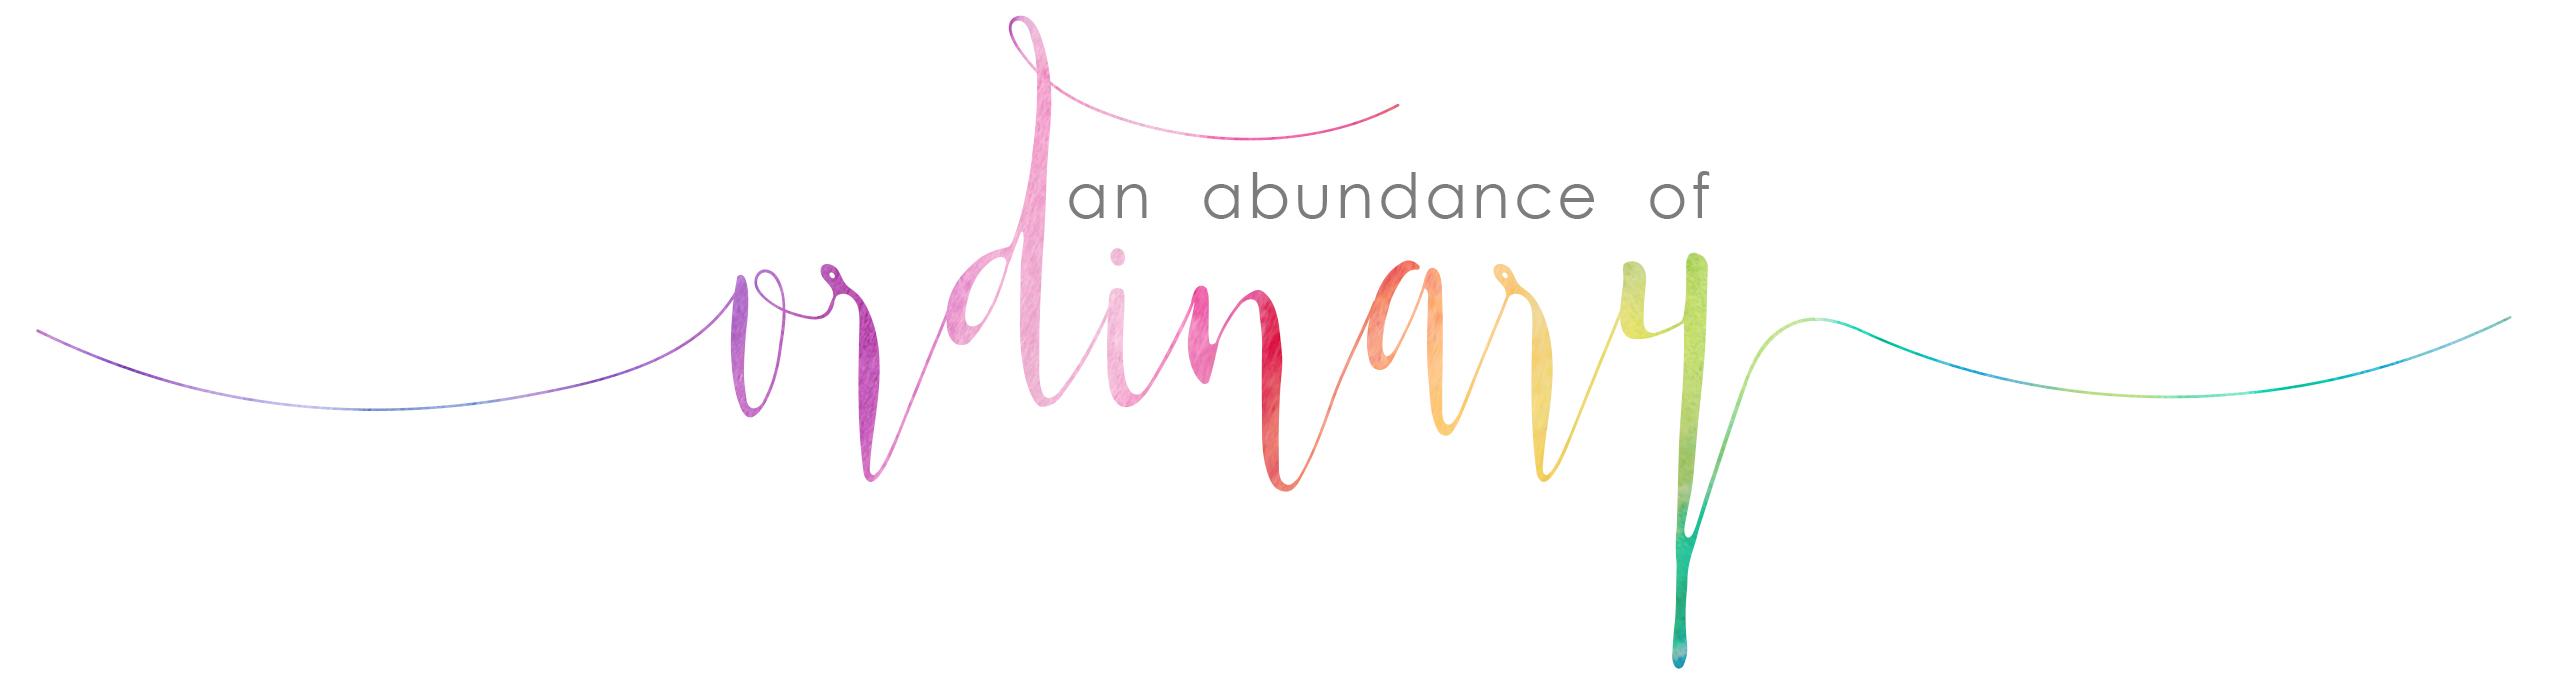 An Abundance Of Ordinary